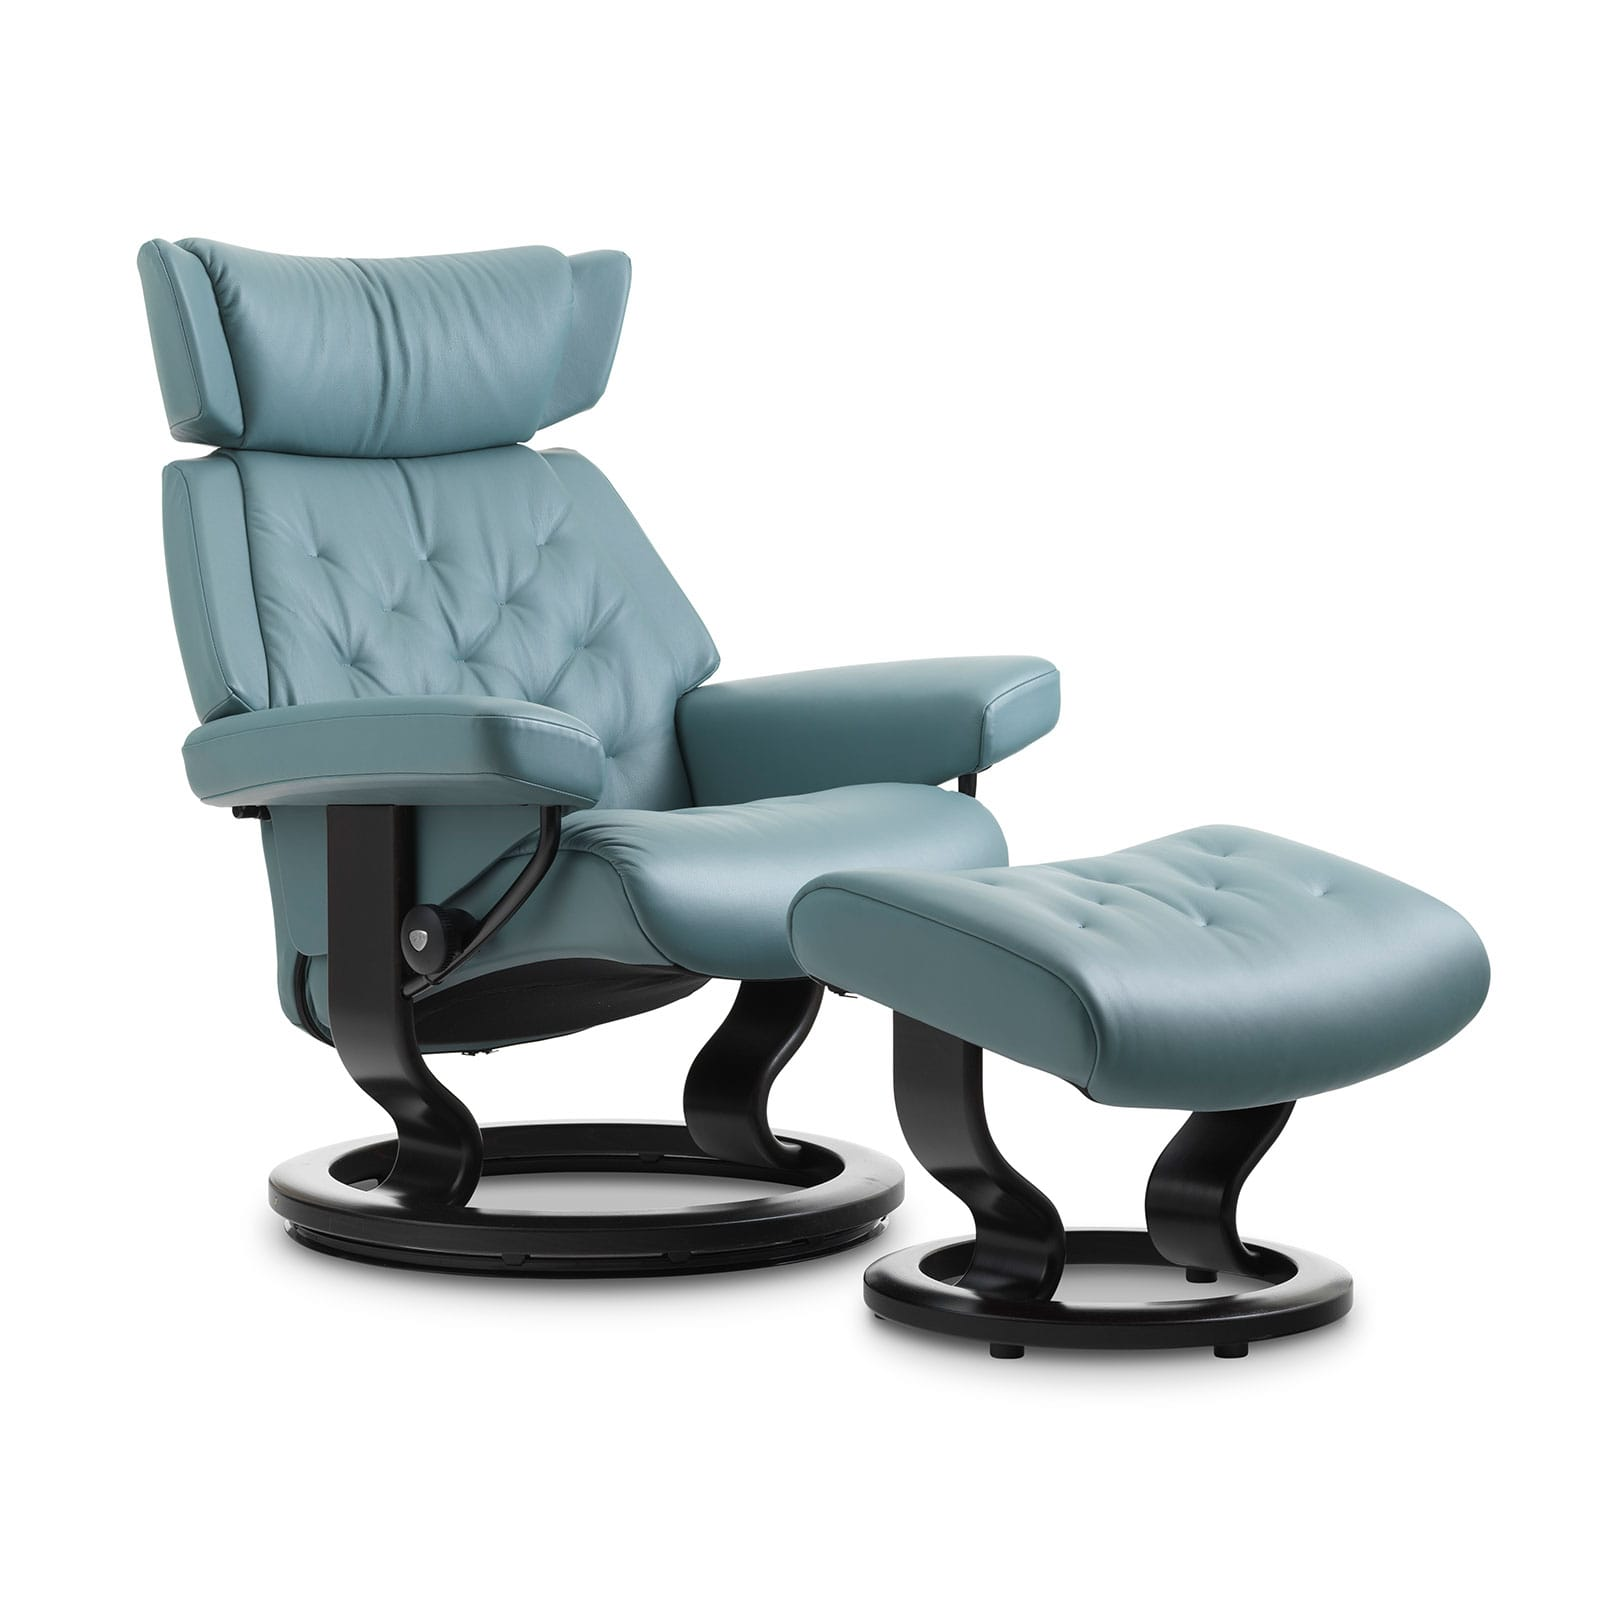 Stressless Sessel Skyline Stressless Sessel Skyline Paloma Aqua Green Classic